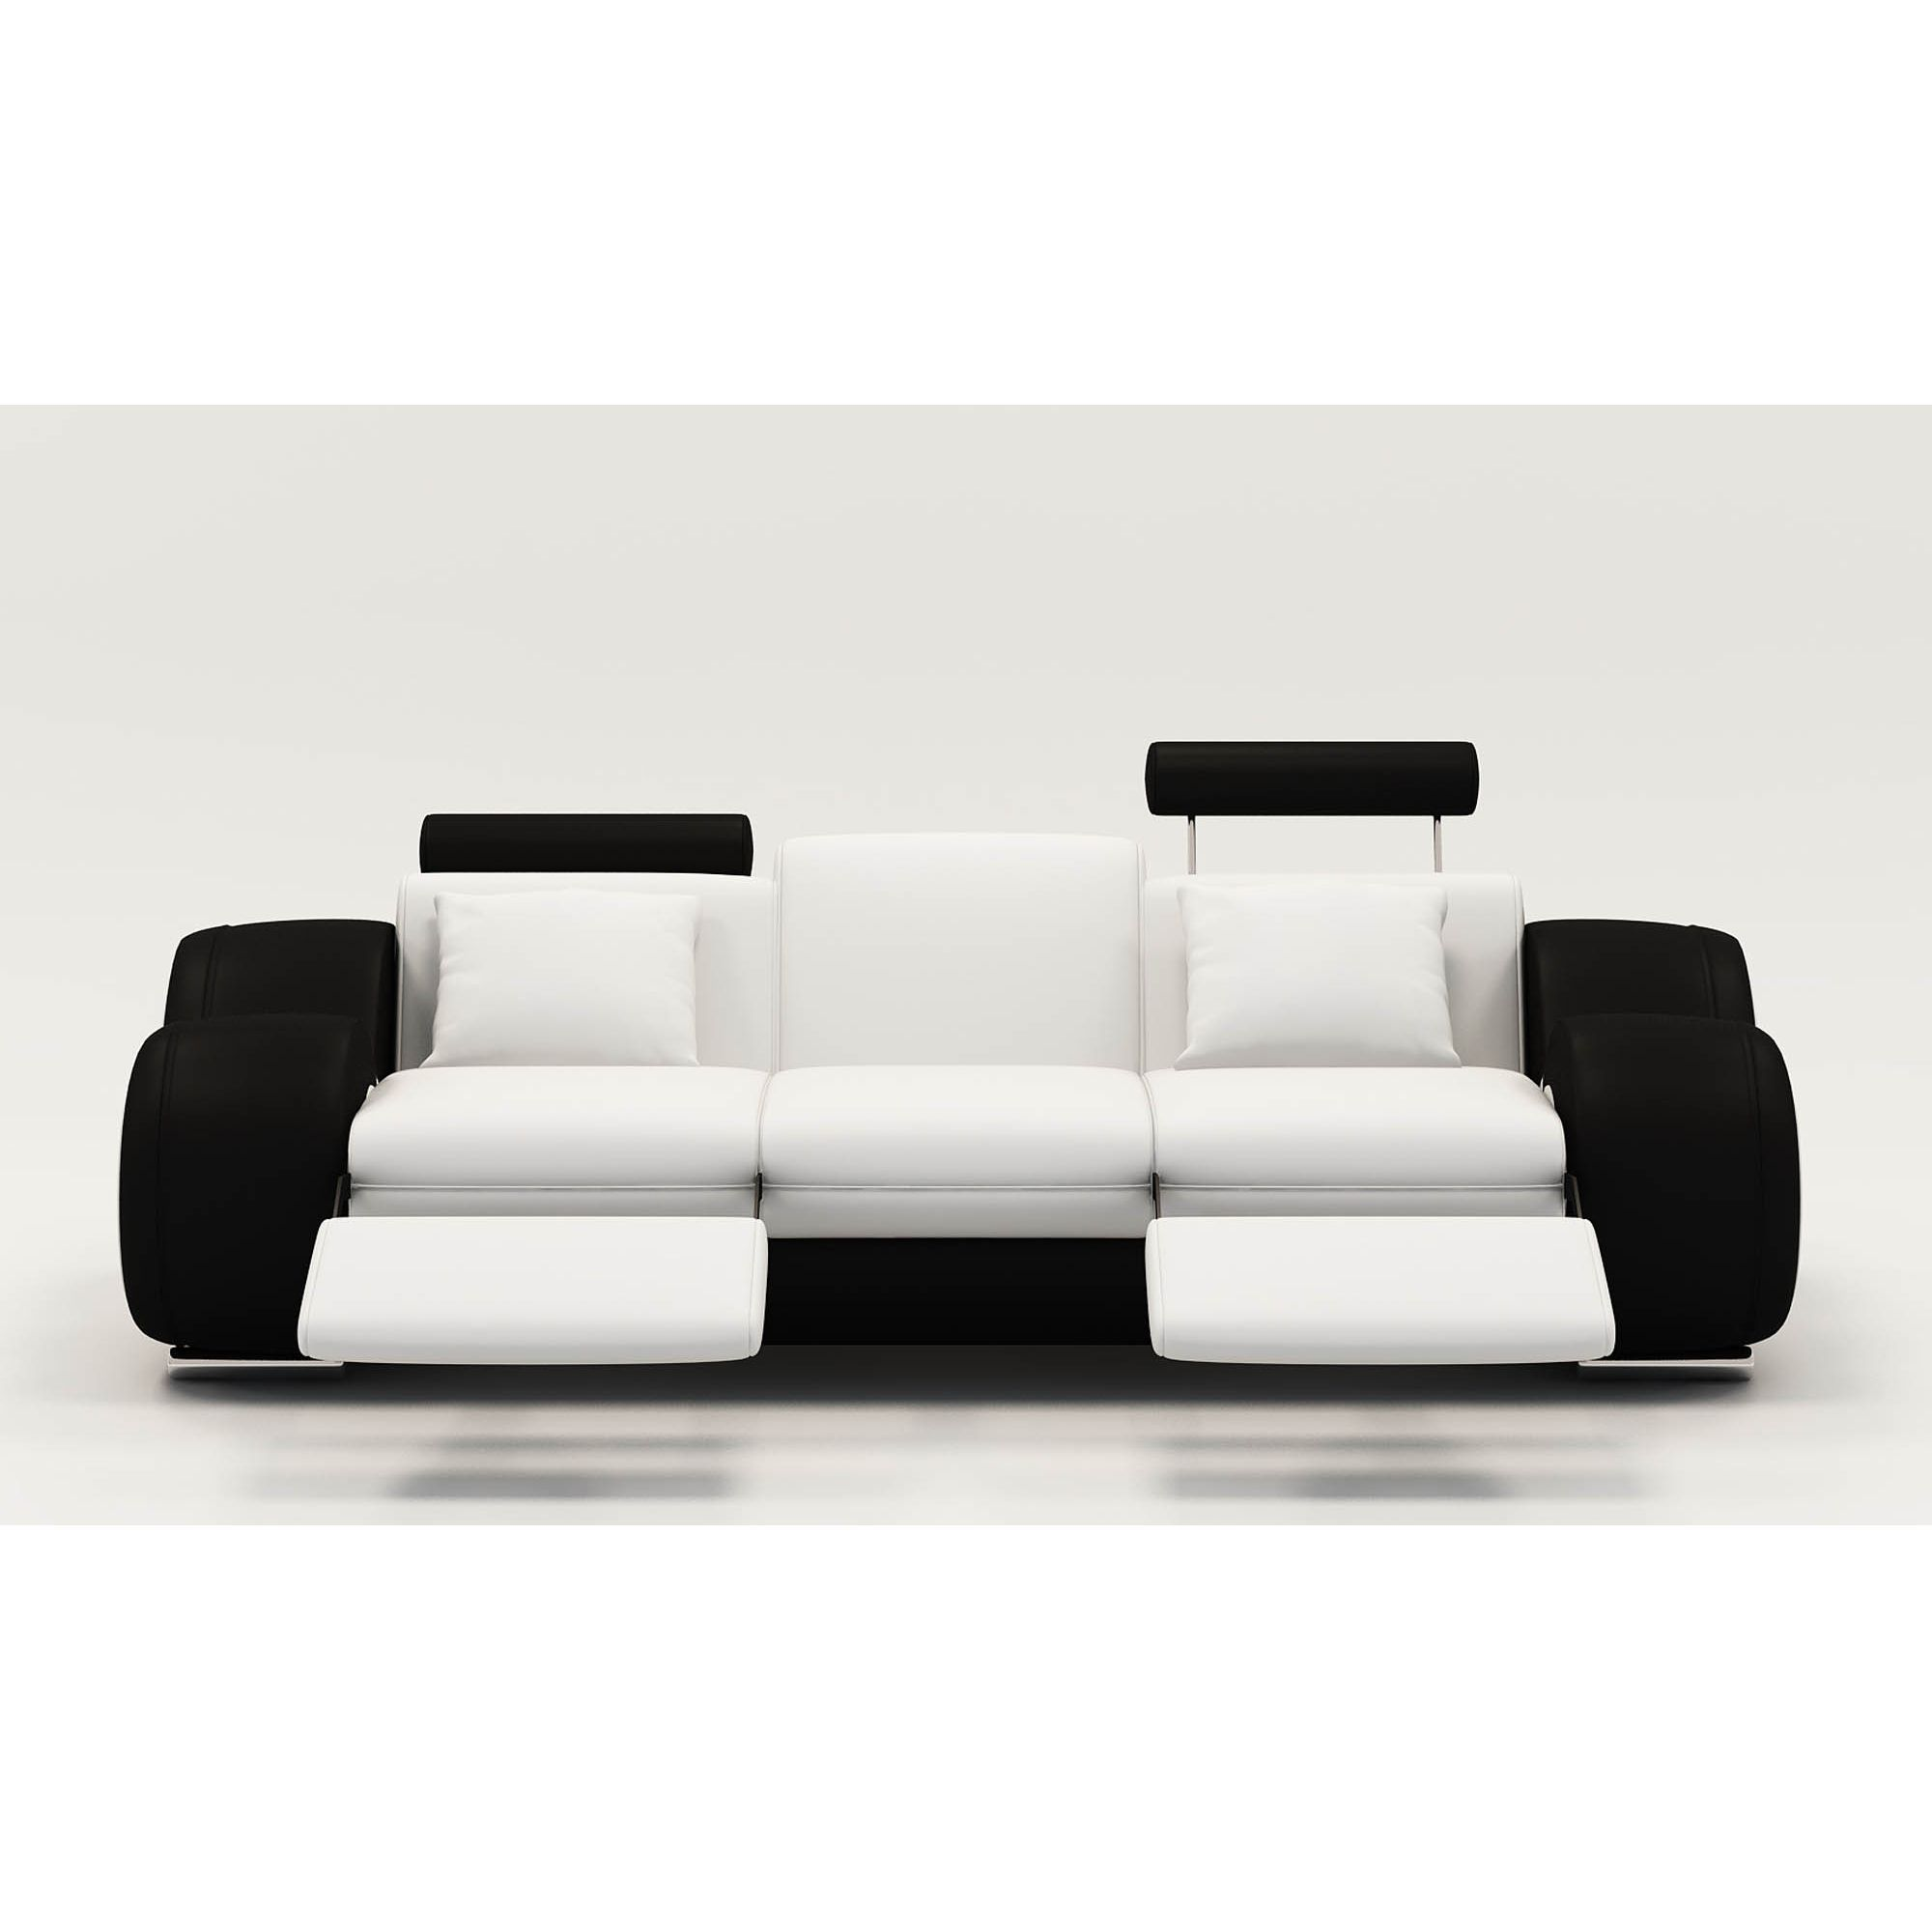 deco in paris canape design 3 places cuir noir et blanc